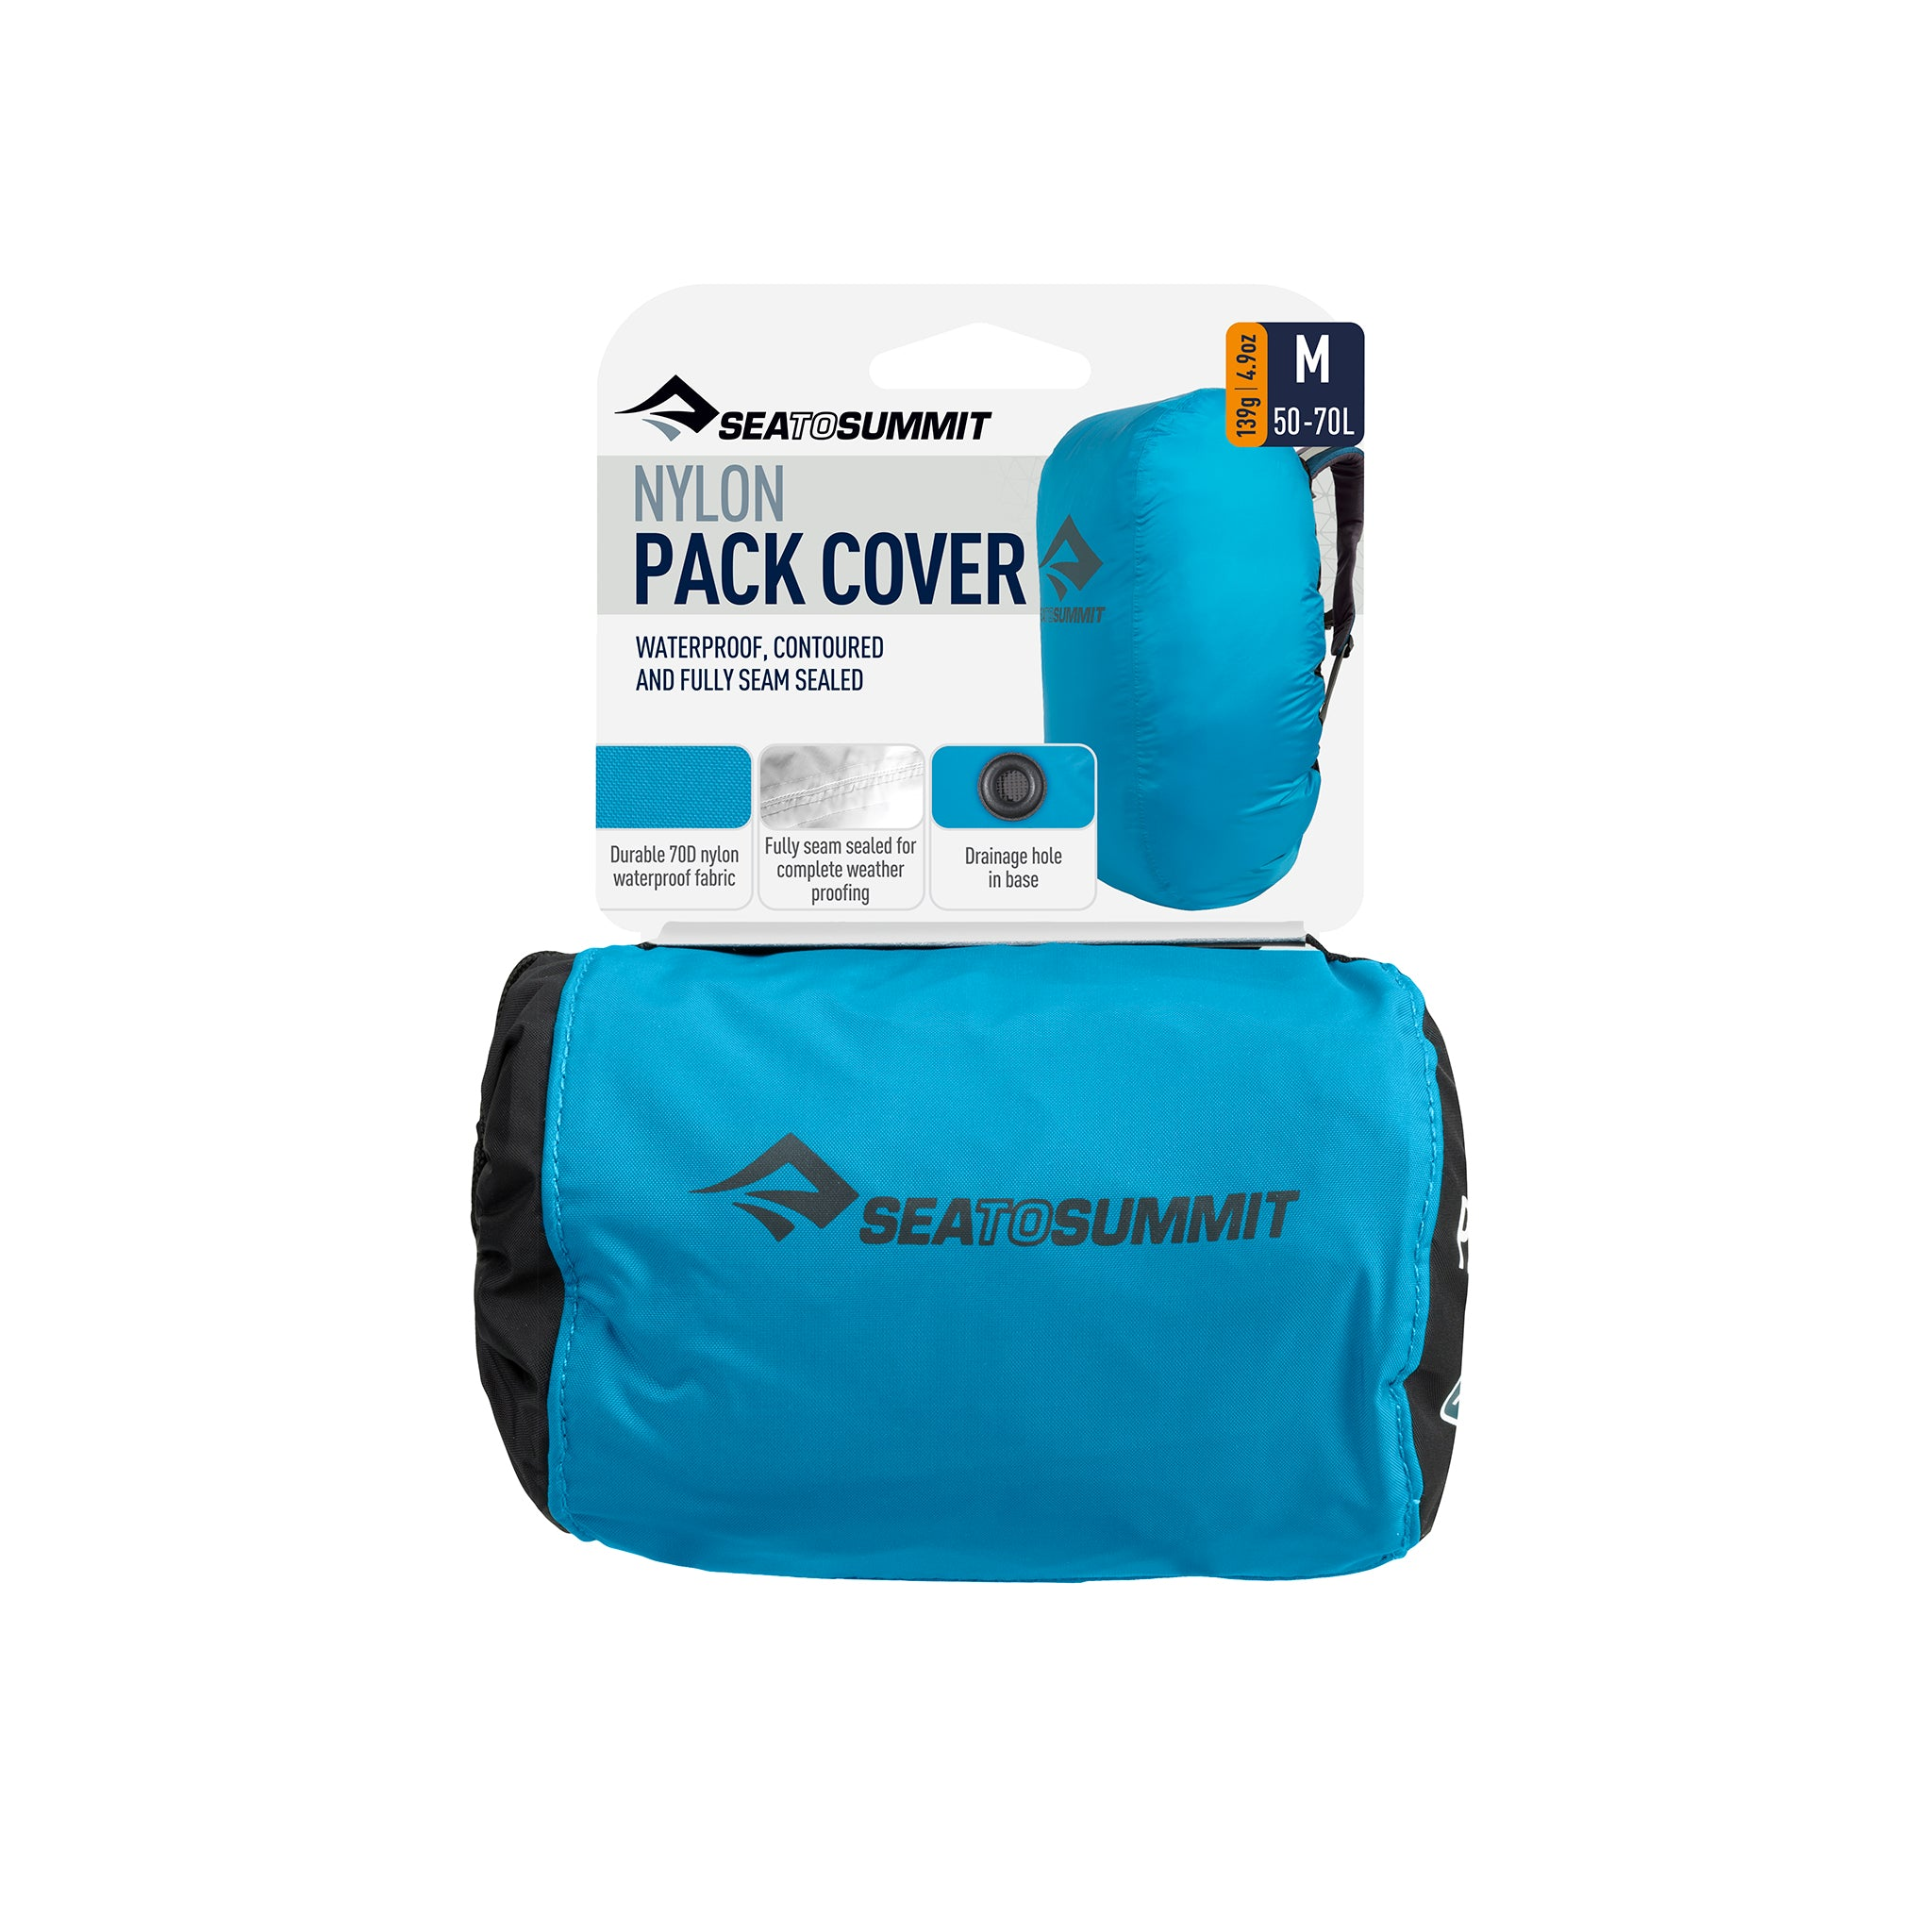 Backpacking Rain _ Pack Cover _ waterproof _ packaged